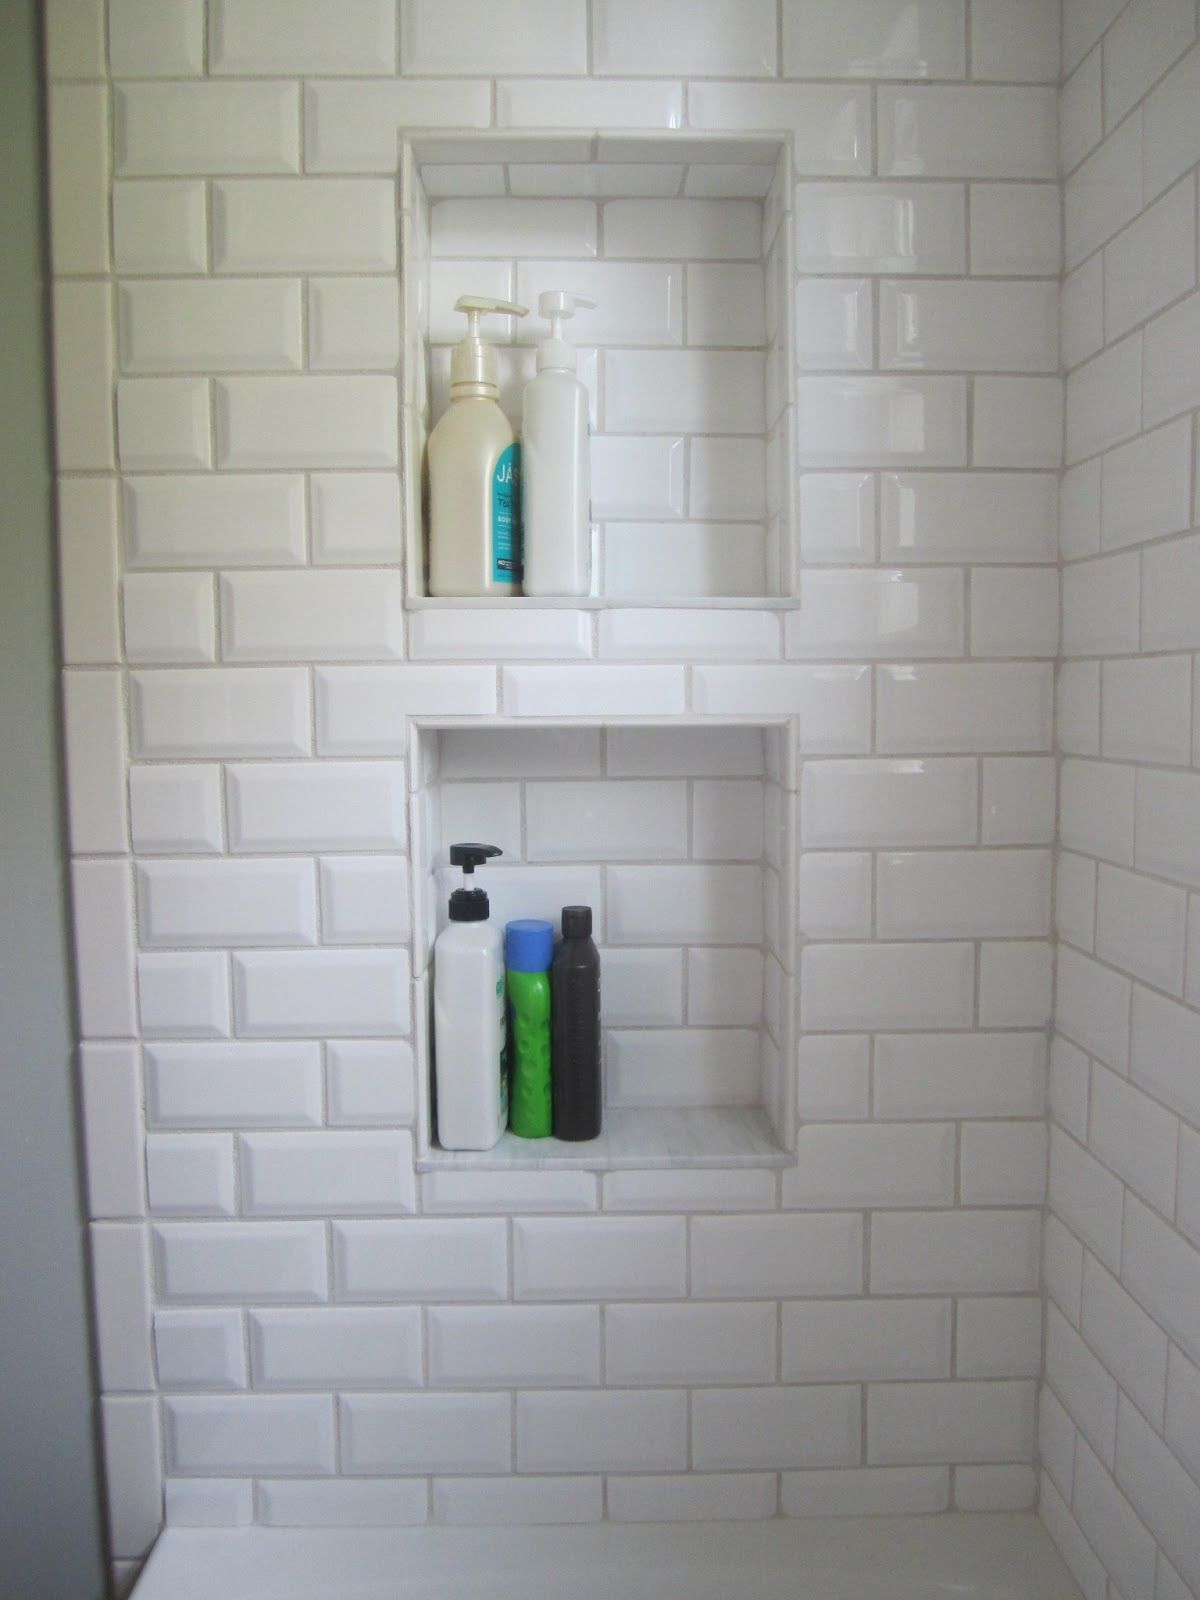 How To Tile A Window In The Shower Google Search Bathroom